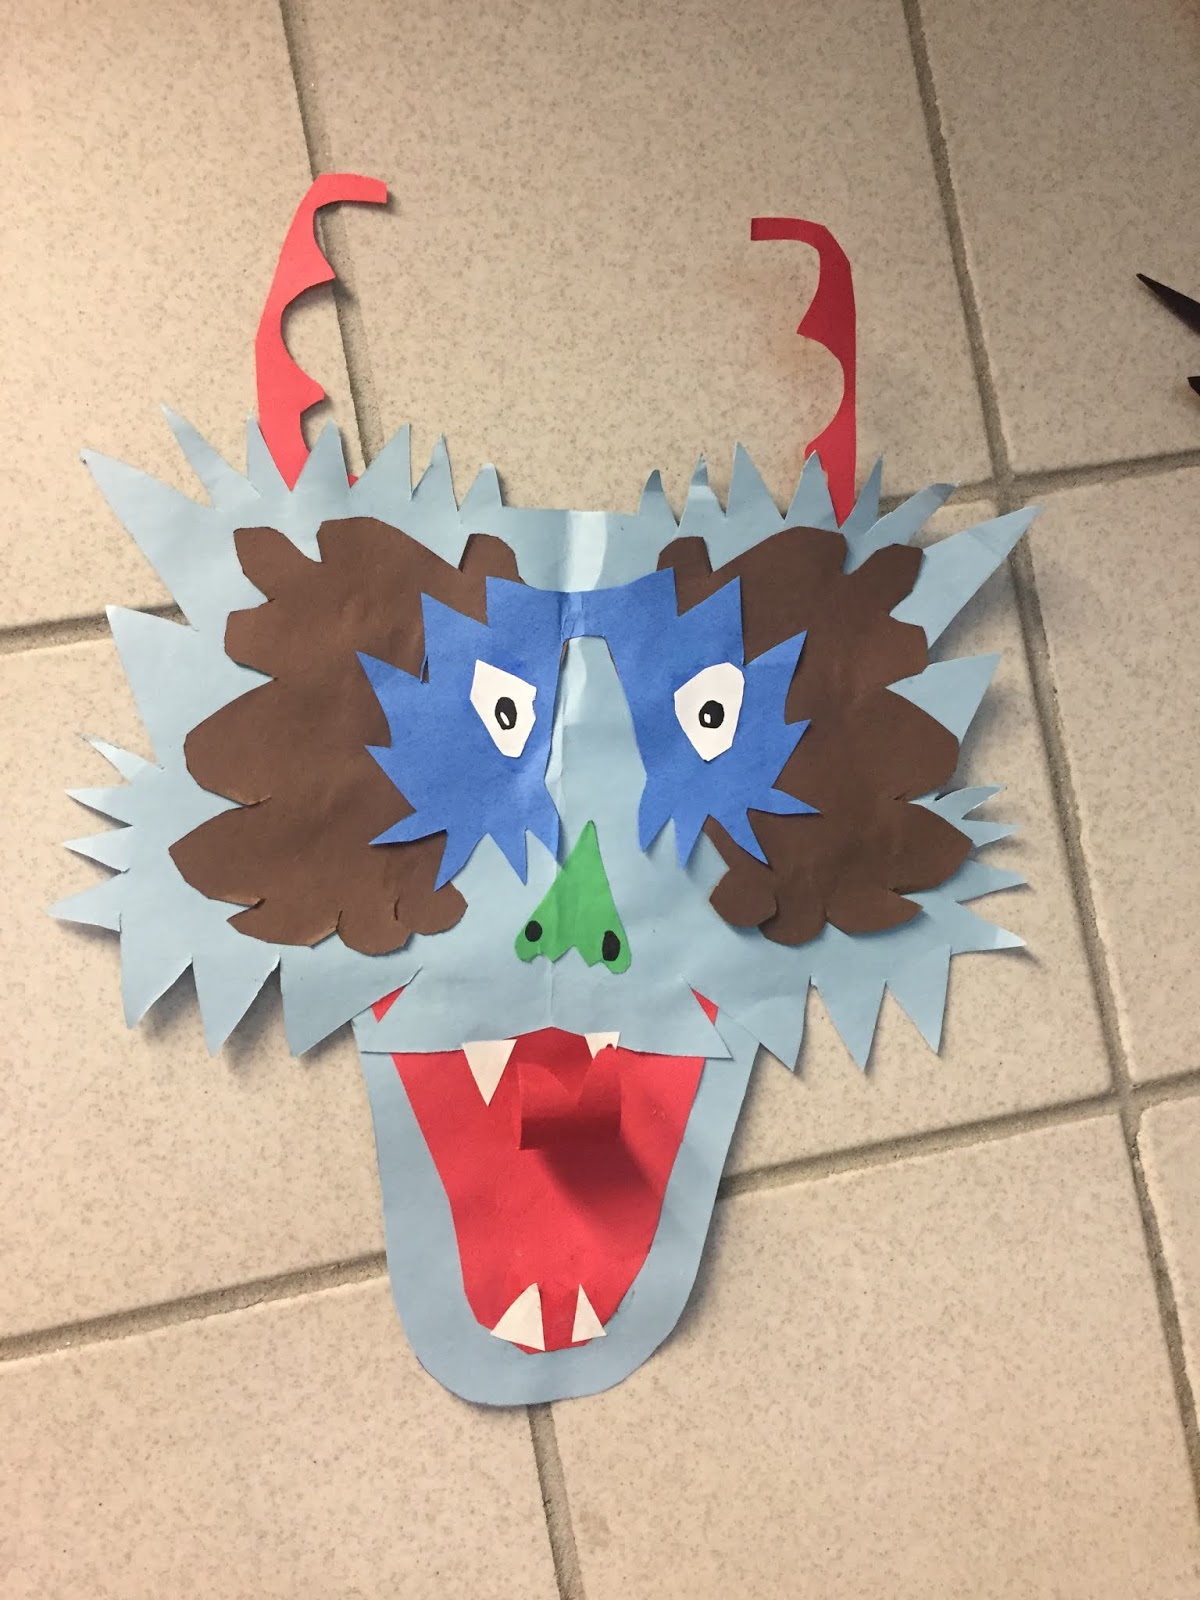 We Also Studied The Use Of Dragons In Chinese Culture